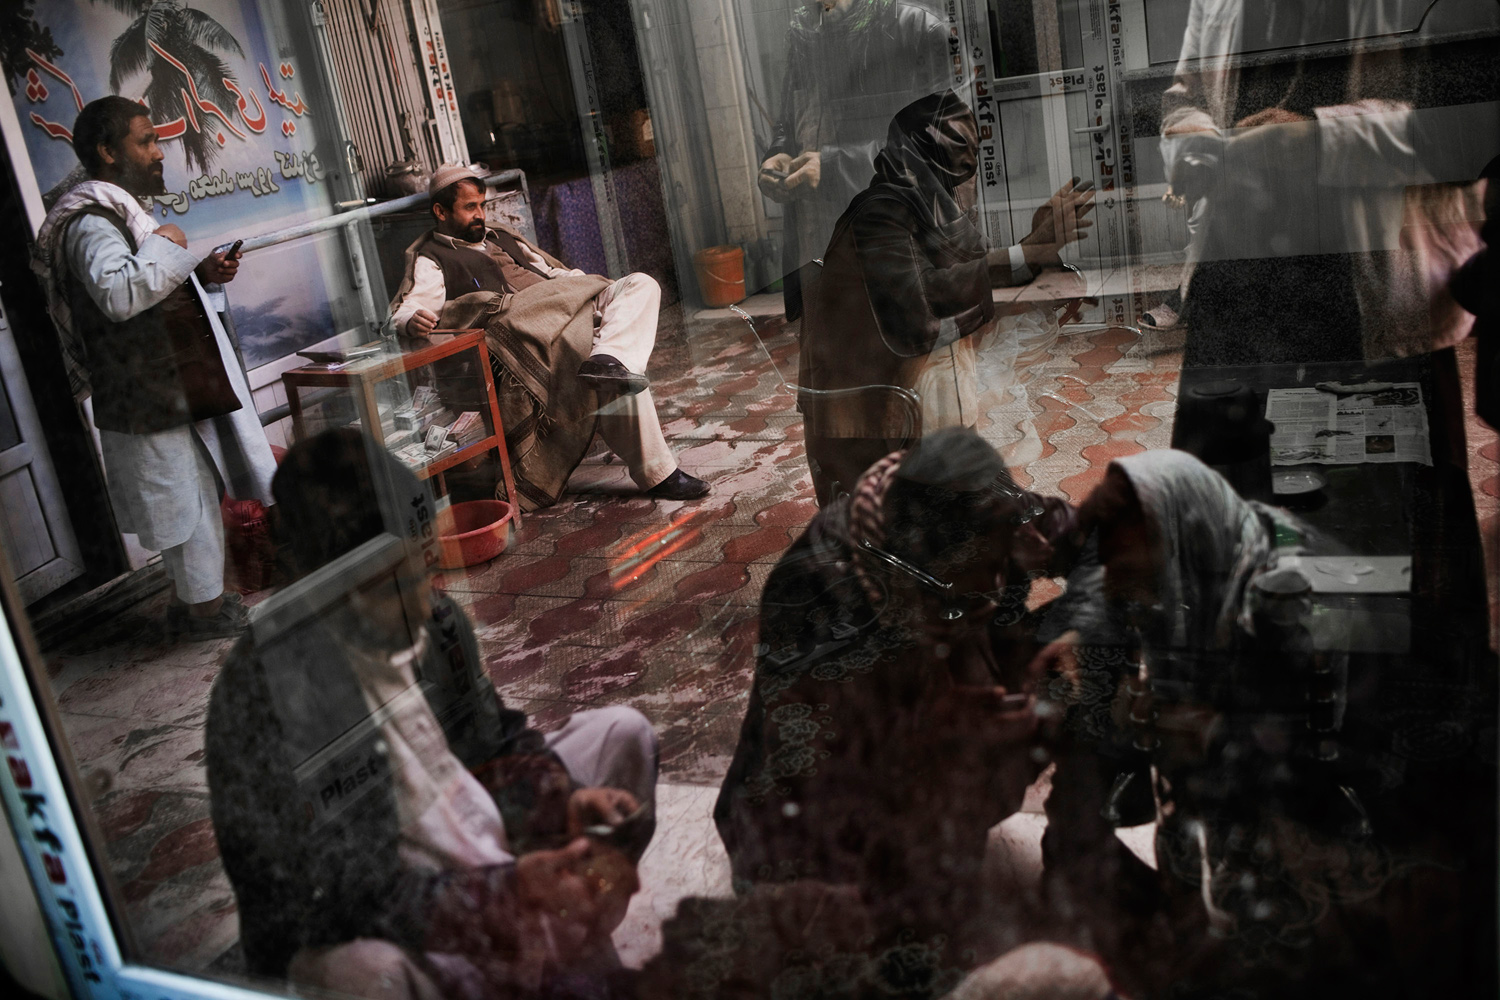 March 10, 2011. Afghan money changers and customers do business in the Sarai Shahzada Money Market in Kabul, Afghanistan.